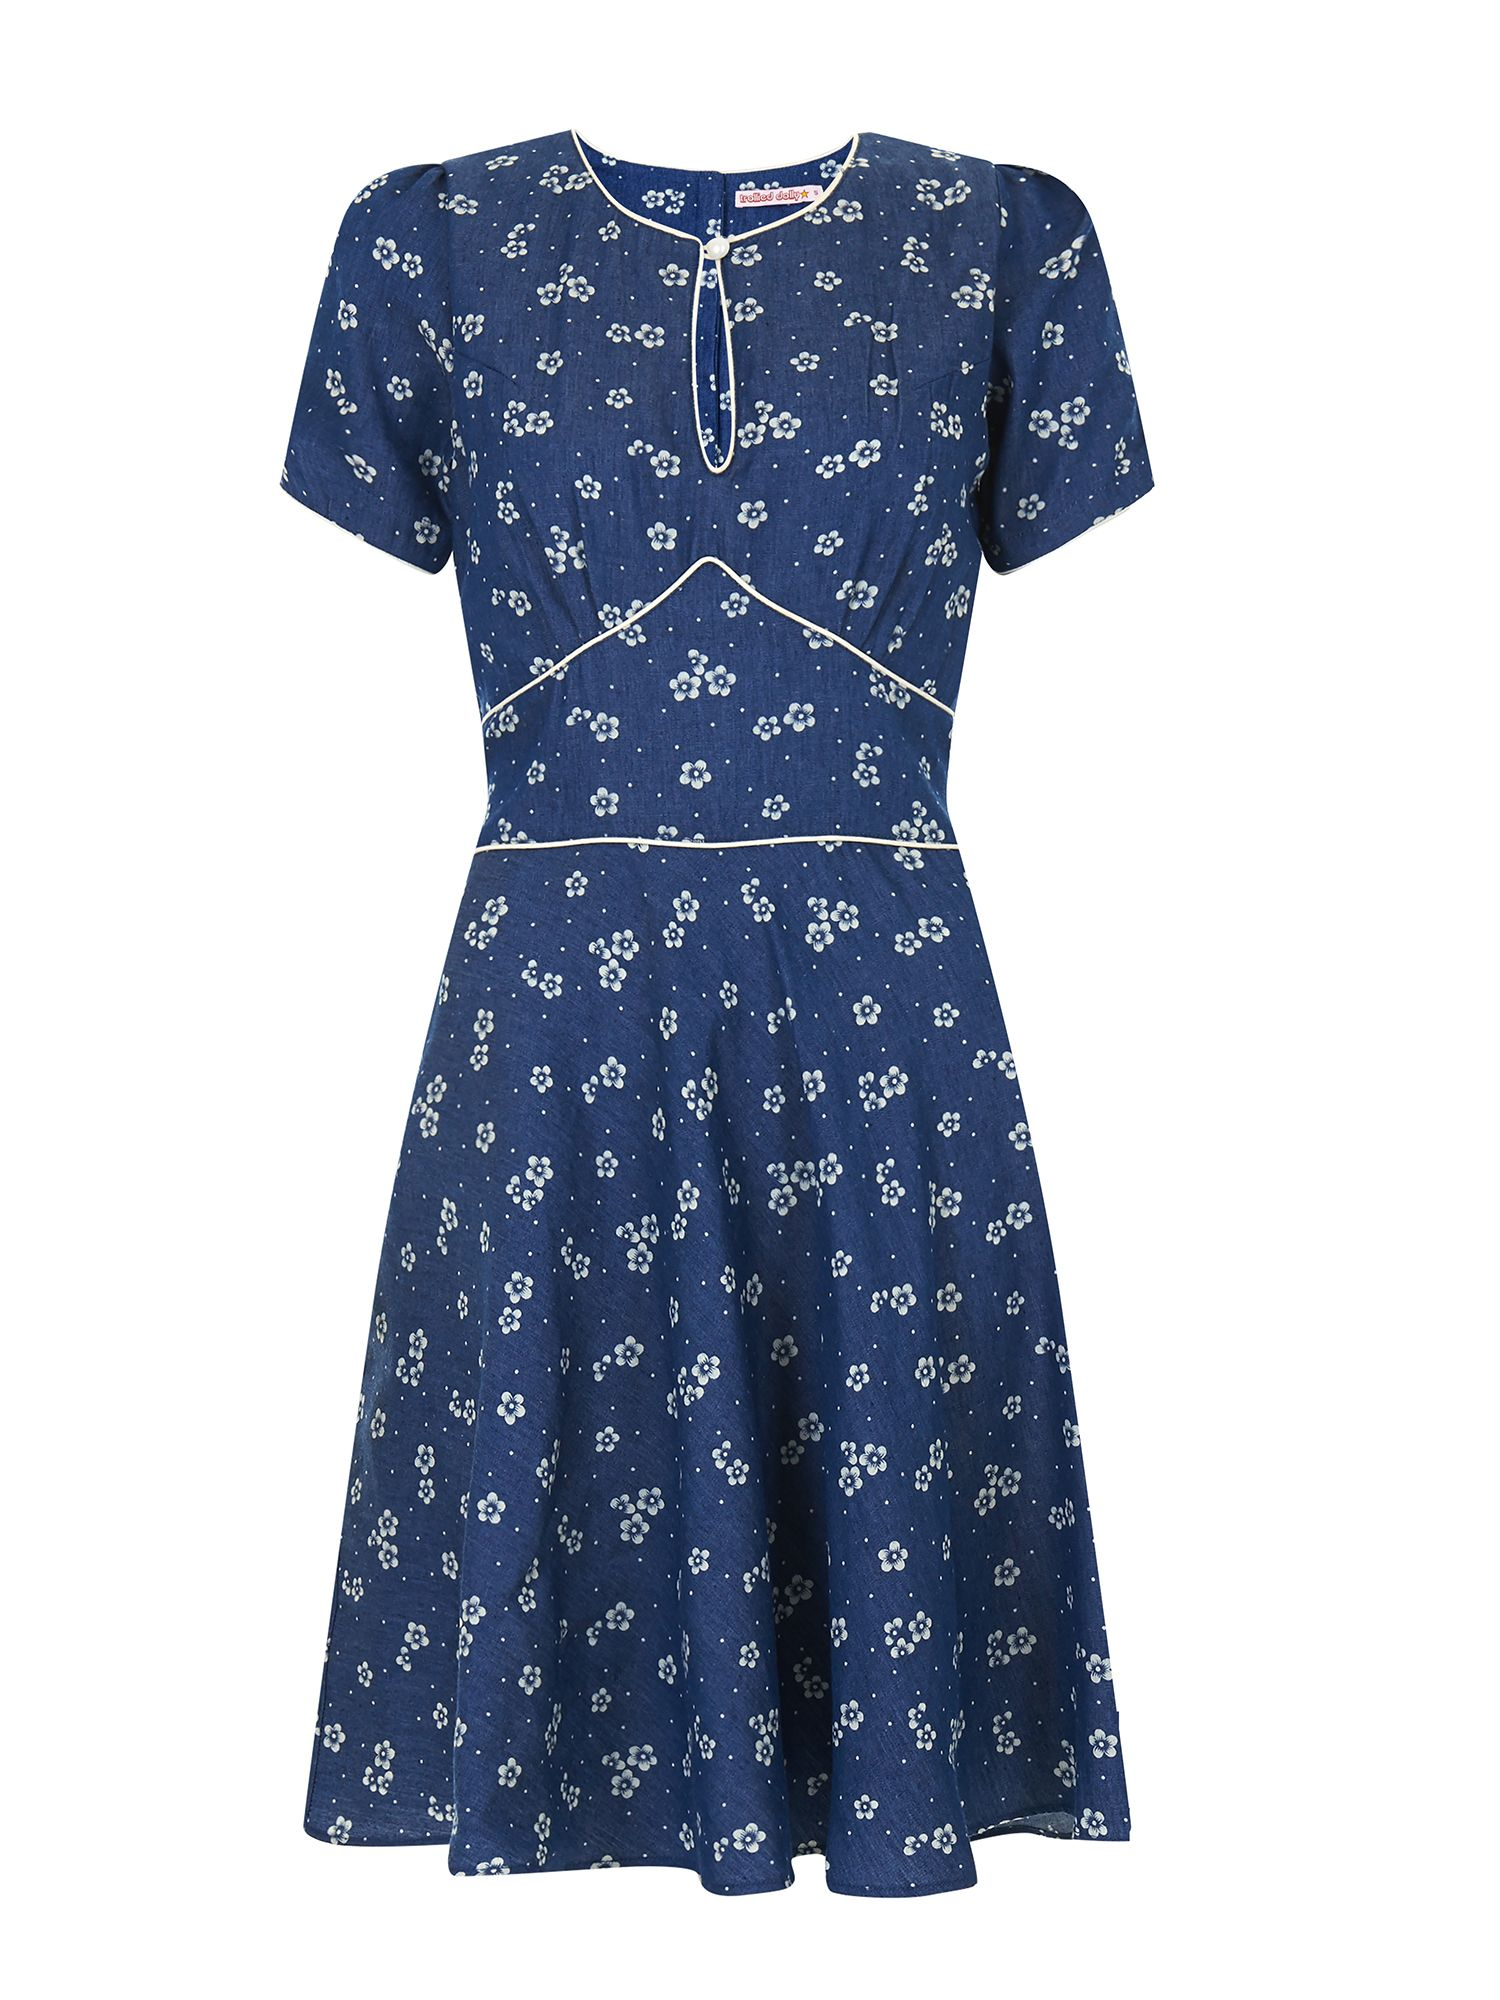 Trollied Dolly Dip and Flare Dress $33.00 AT vintagedancer.com